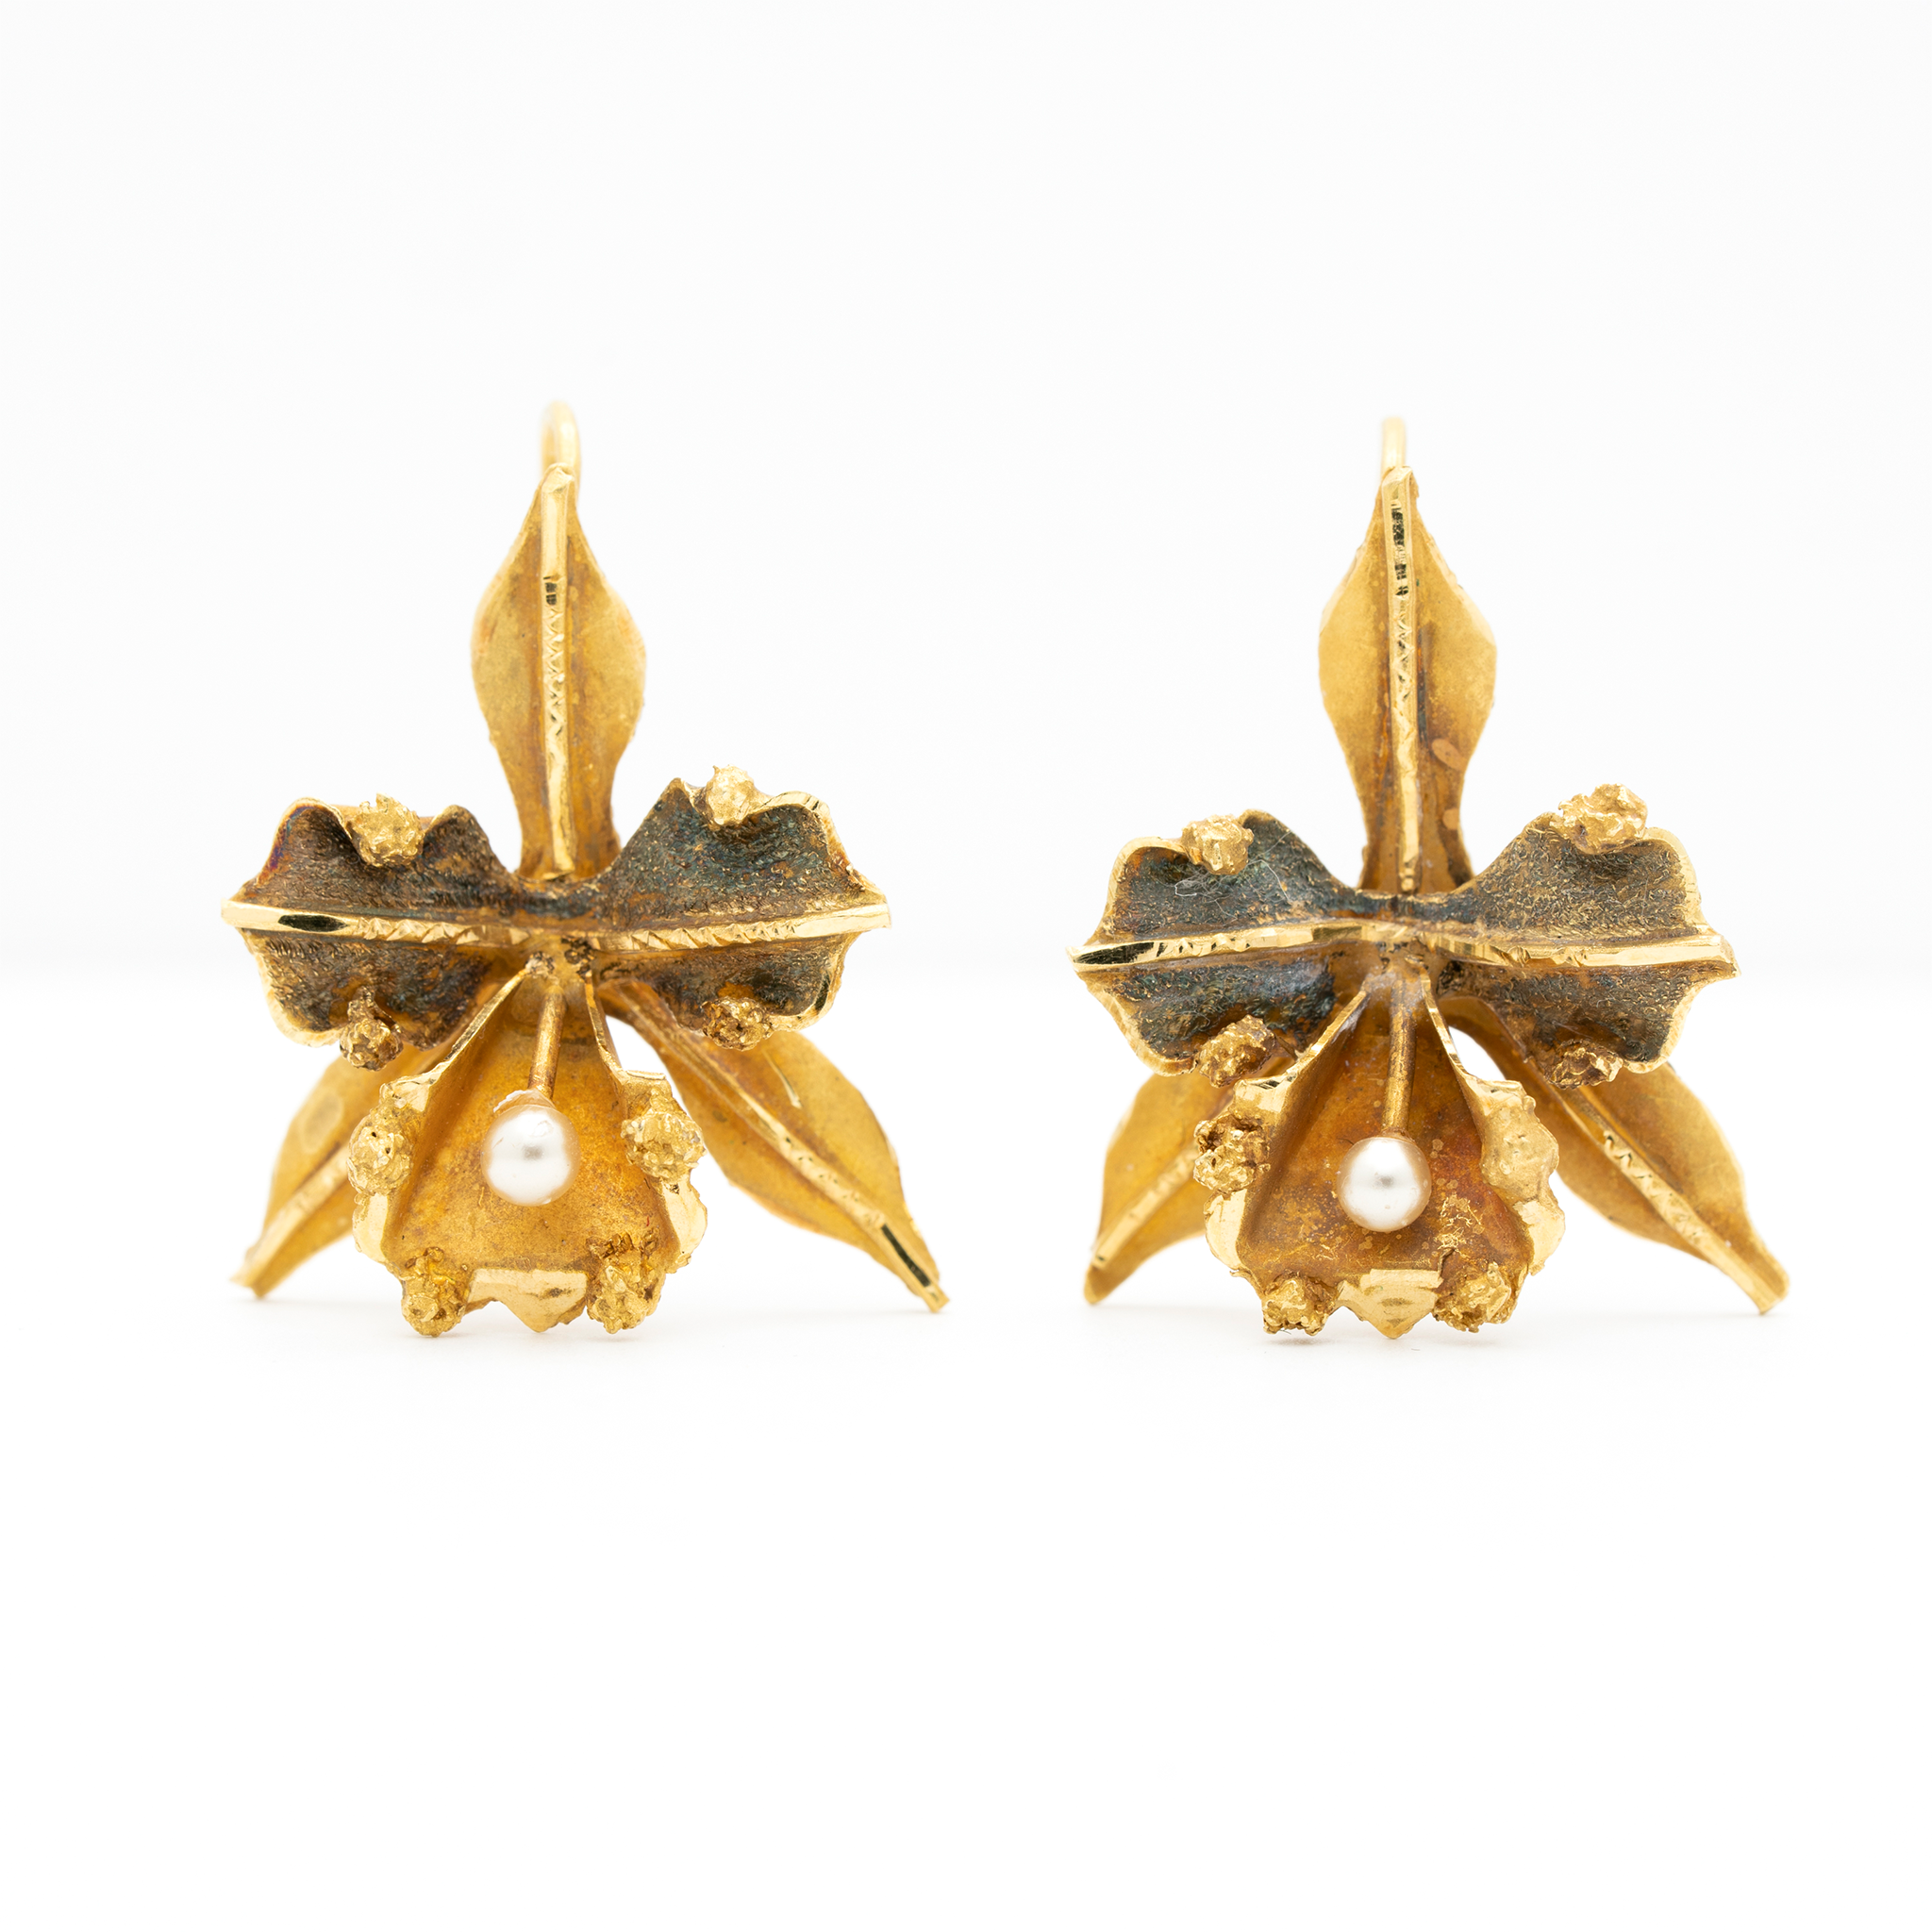 VICTORIAN 18K YELLOW GOLD, CATTLEYA ORCHID GOLD AND PEARL EARRINGS c.1880s